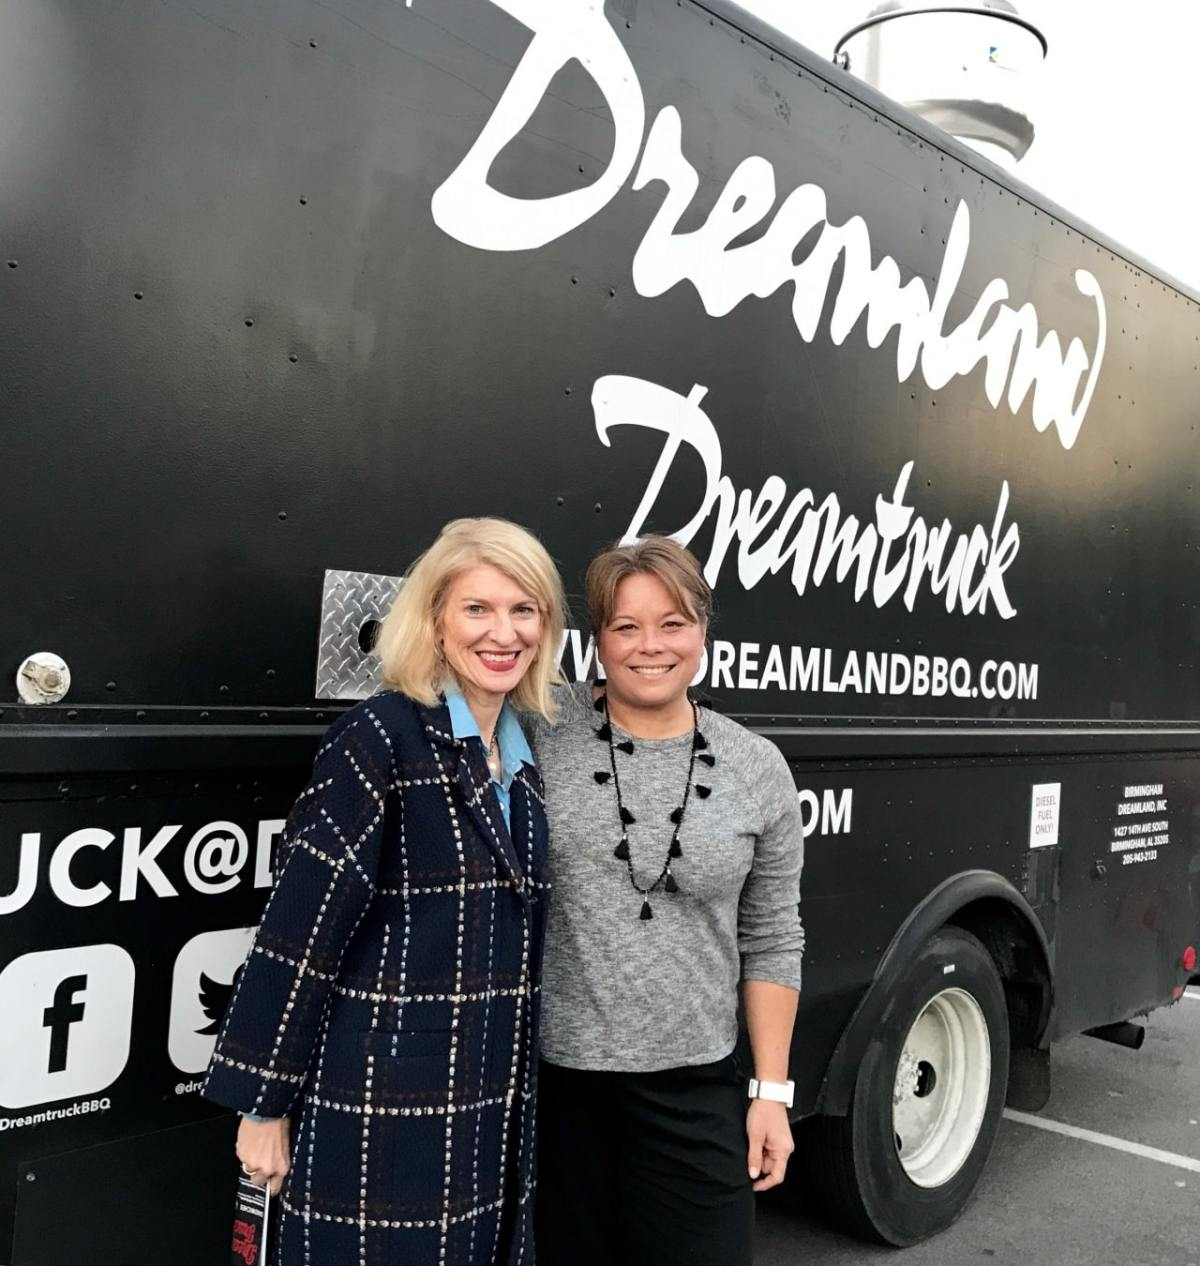 Dreamland BBQ hits it out of the park with its amazing new Dreamtruck menu